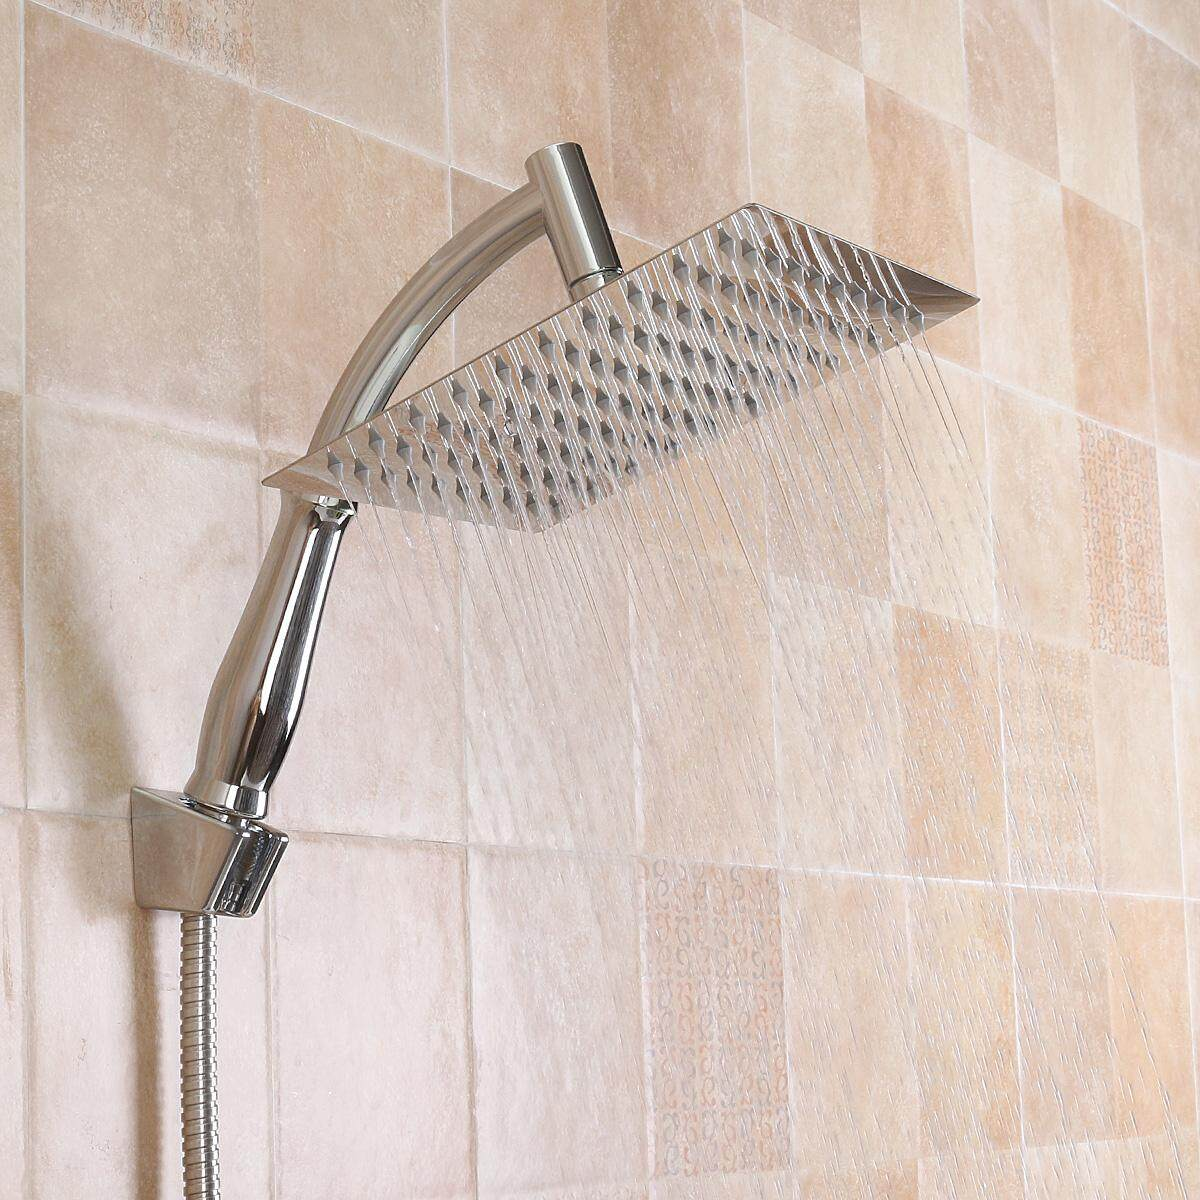 5 In 1 8 Bathroom Square Shower Head Chrome Water Rainfall W Holder Extension Pipe 1 5m Hose